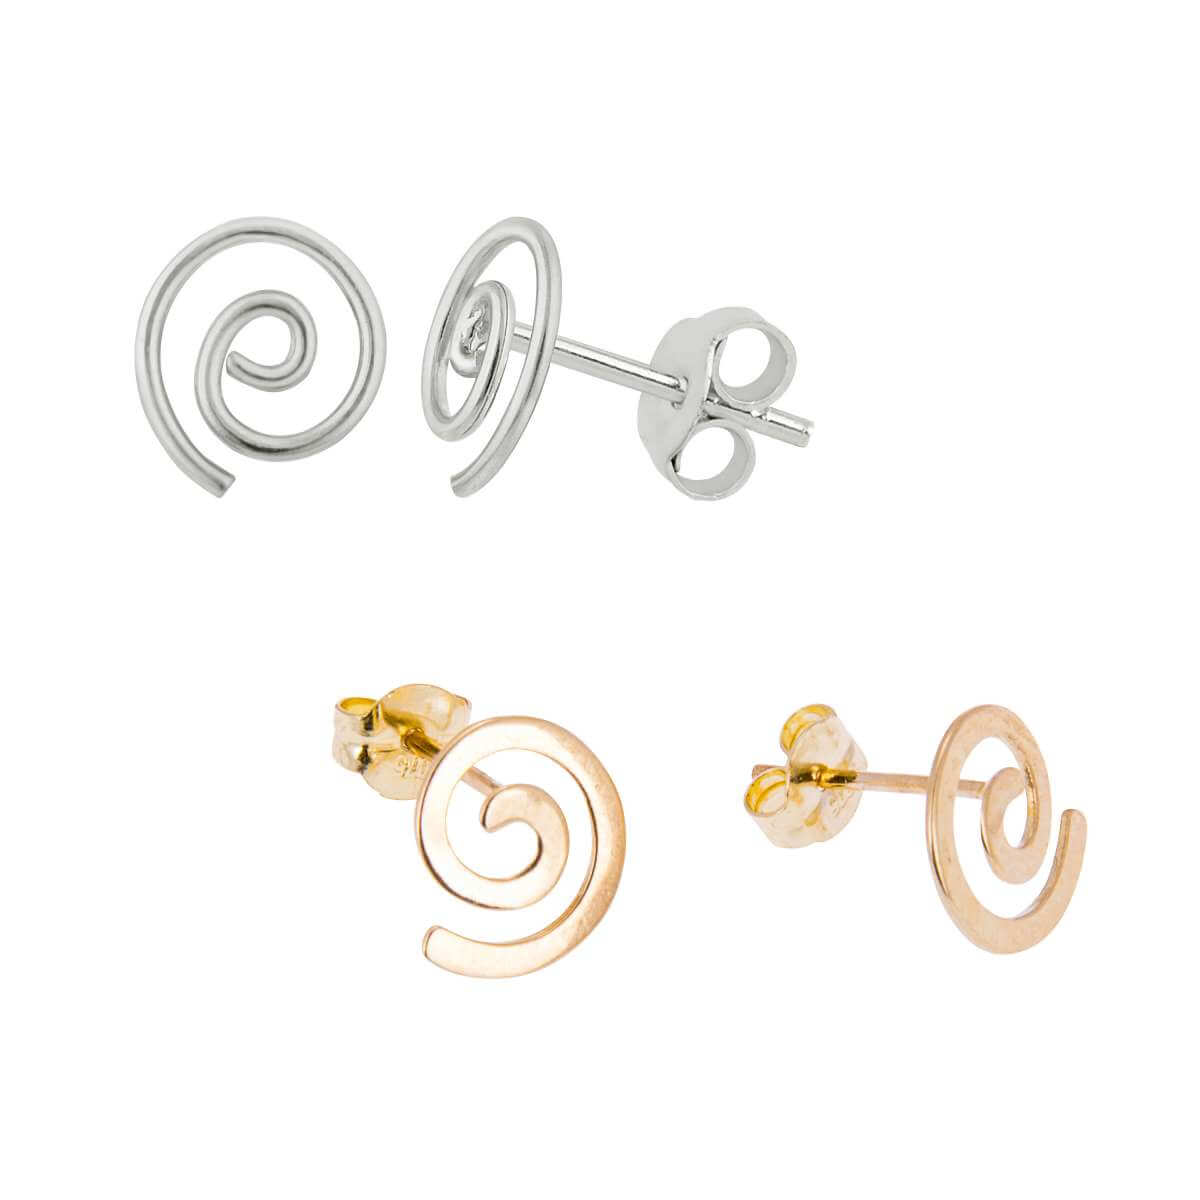 9ct Gold & Sterling Silver Spiral Stud Earrings Set